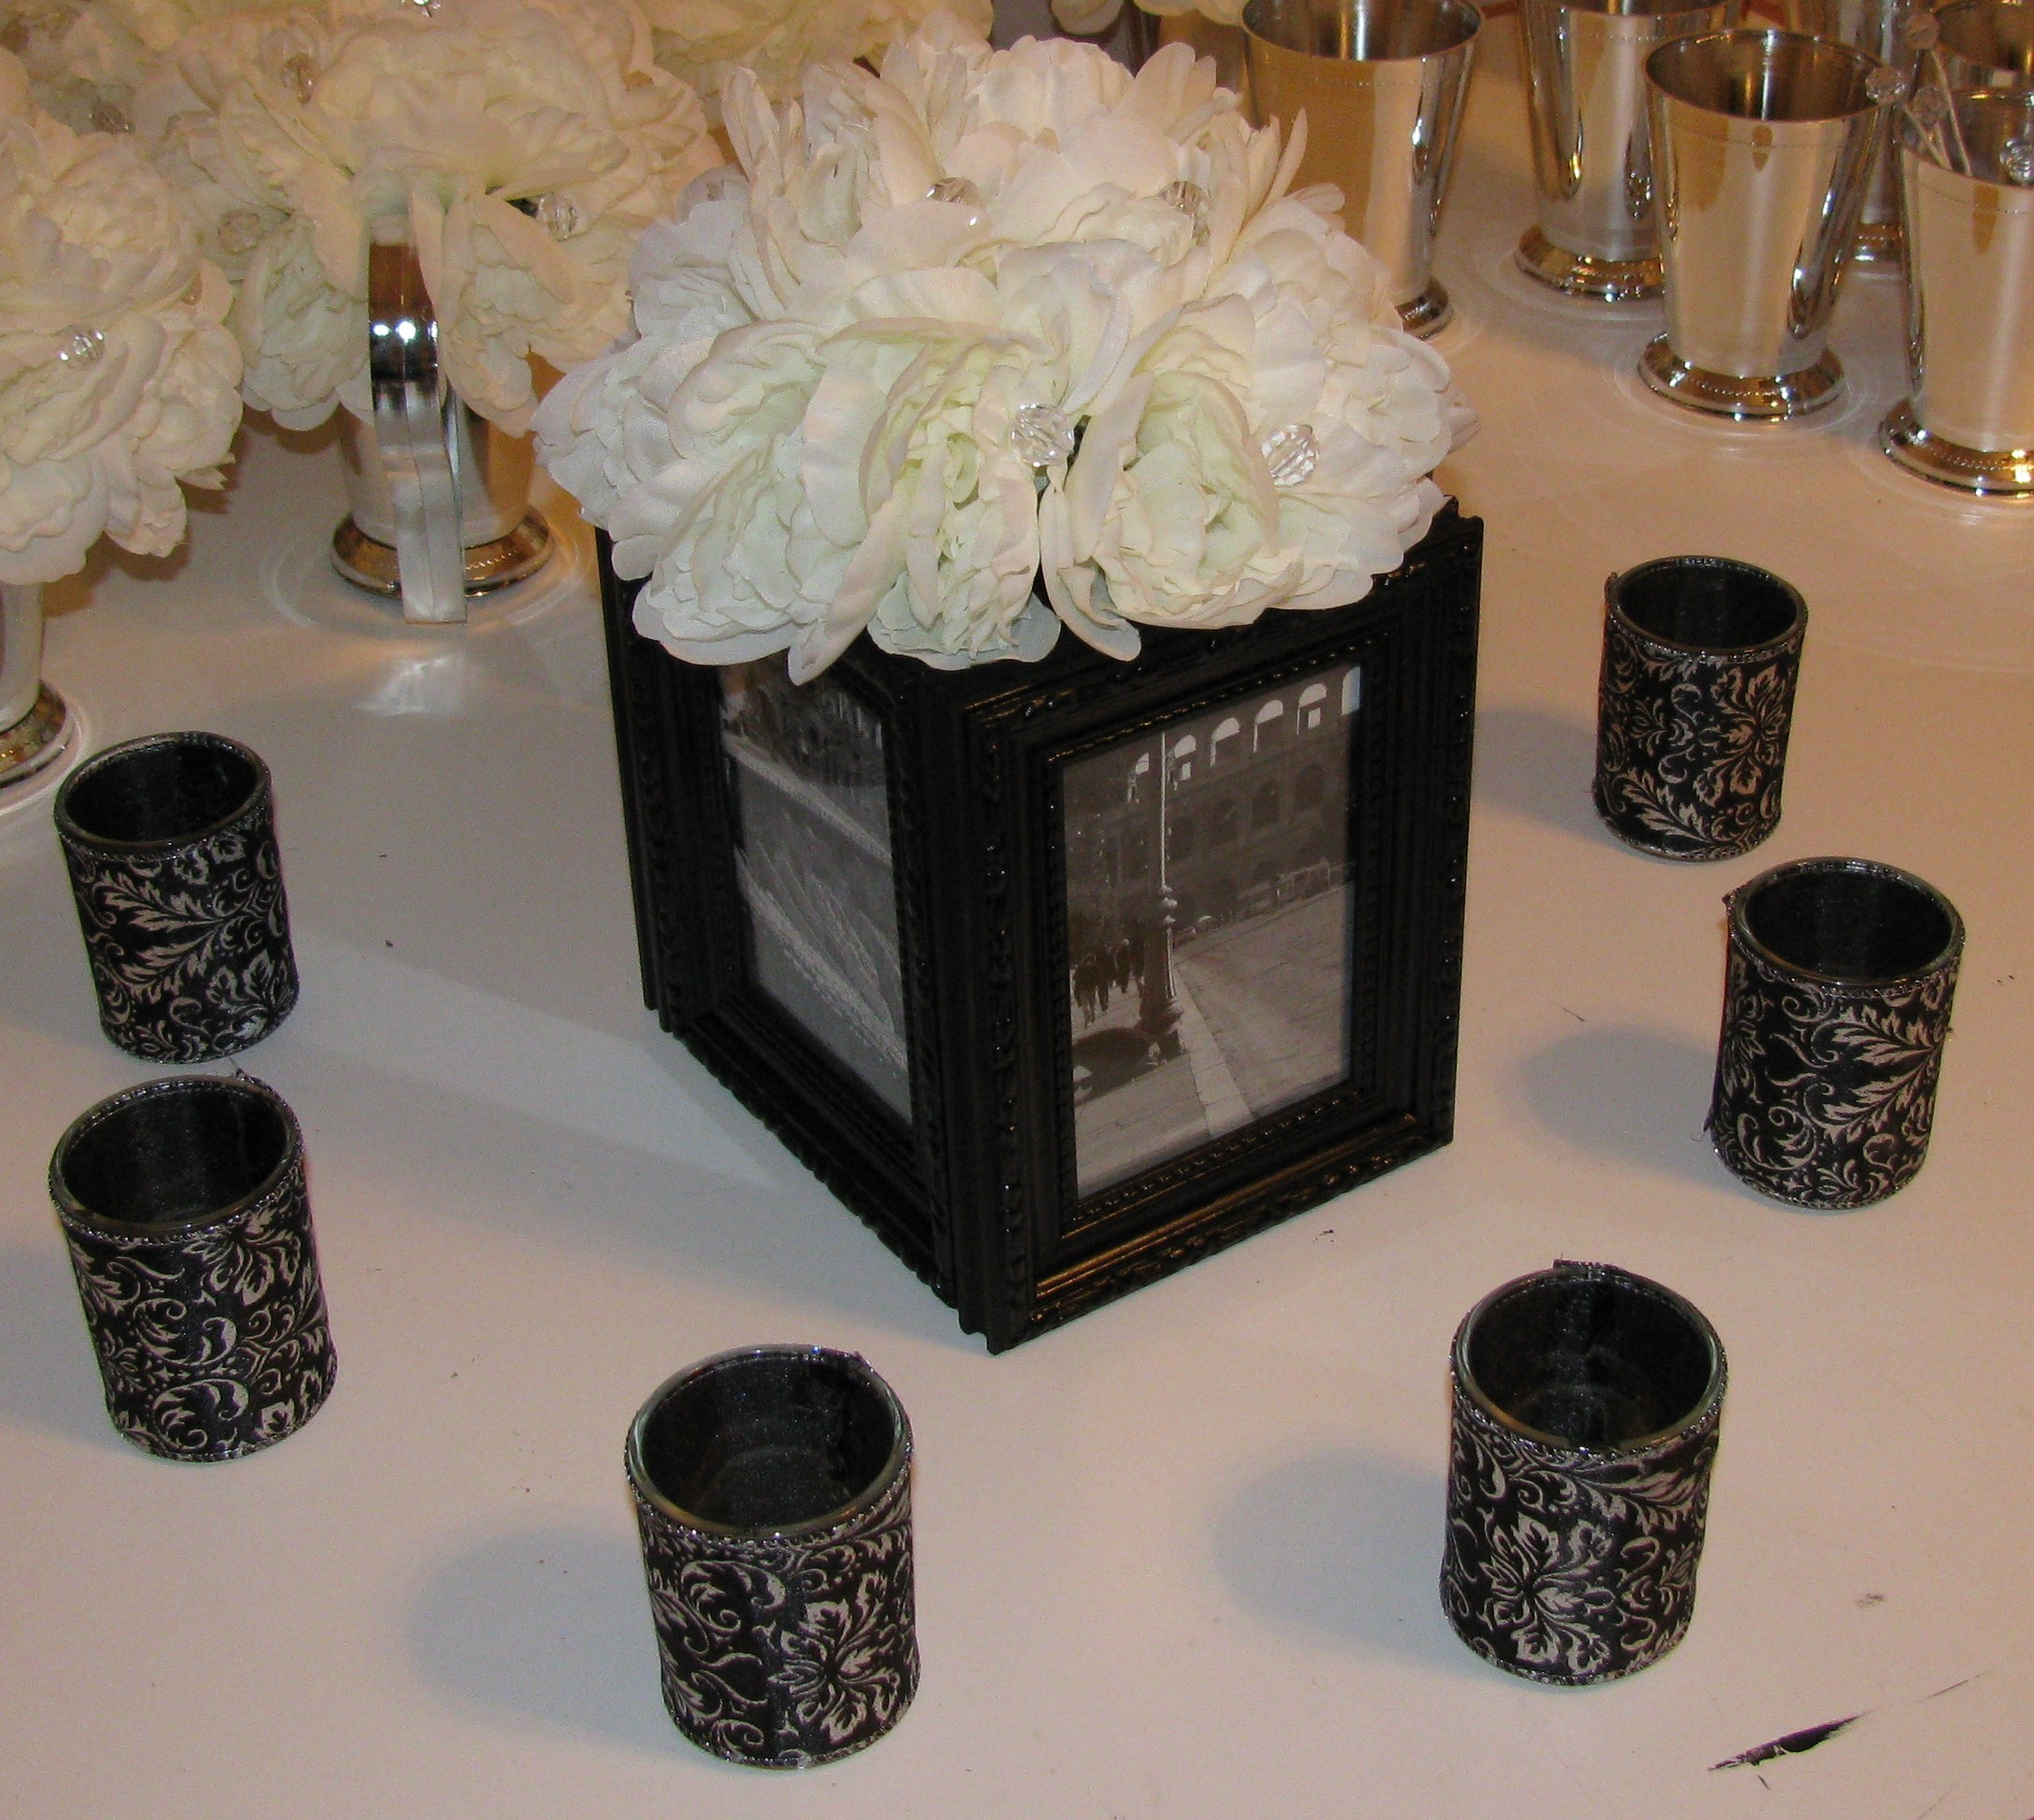 DIY, Reception, Flowers & Decor, Centerpieces, Centerpiece, Damask